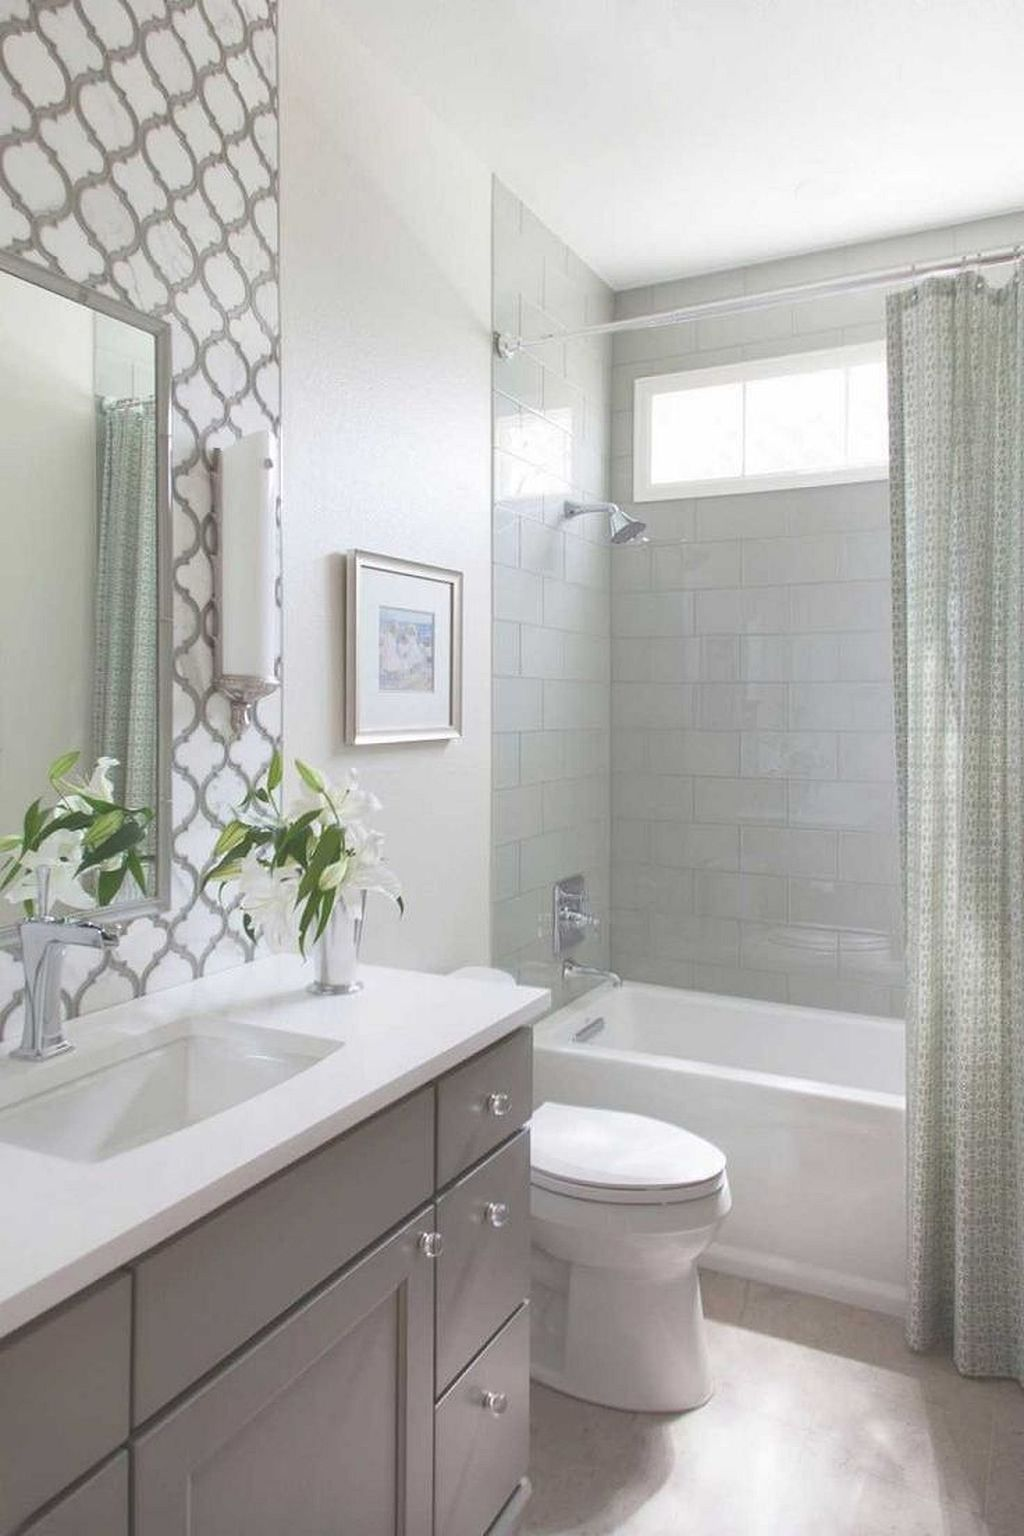 Modern Small Bathroom Ideas Beautiful Design Decor For Your Bathroom On A Budget Smallba Bathroom Tub Shower Combo Bathroom Design Small Bathrooms Remodel